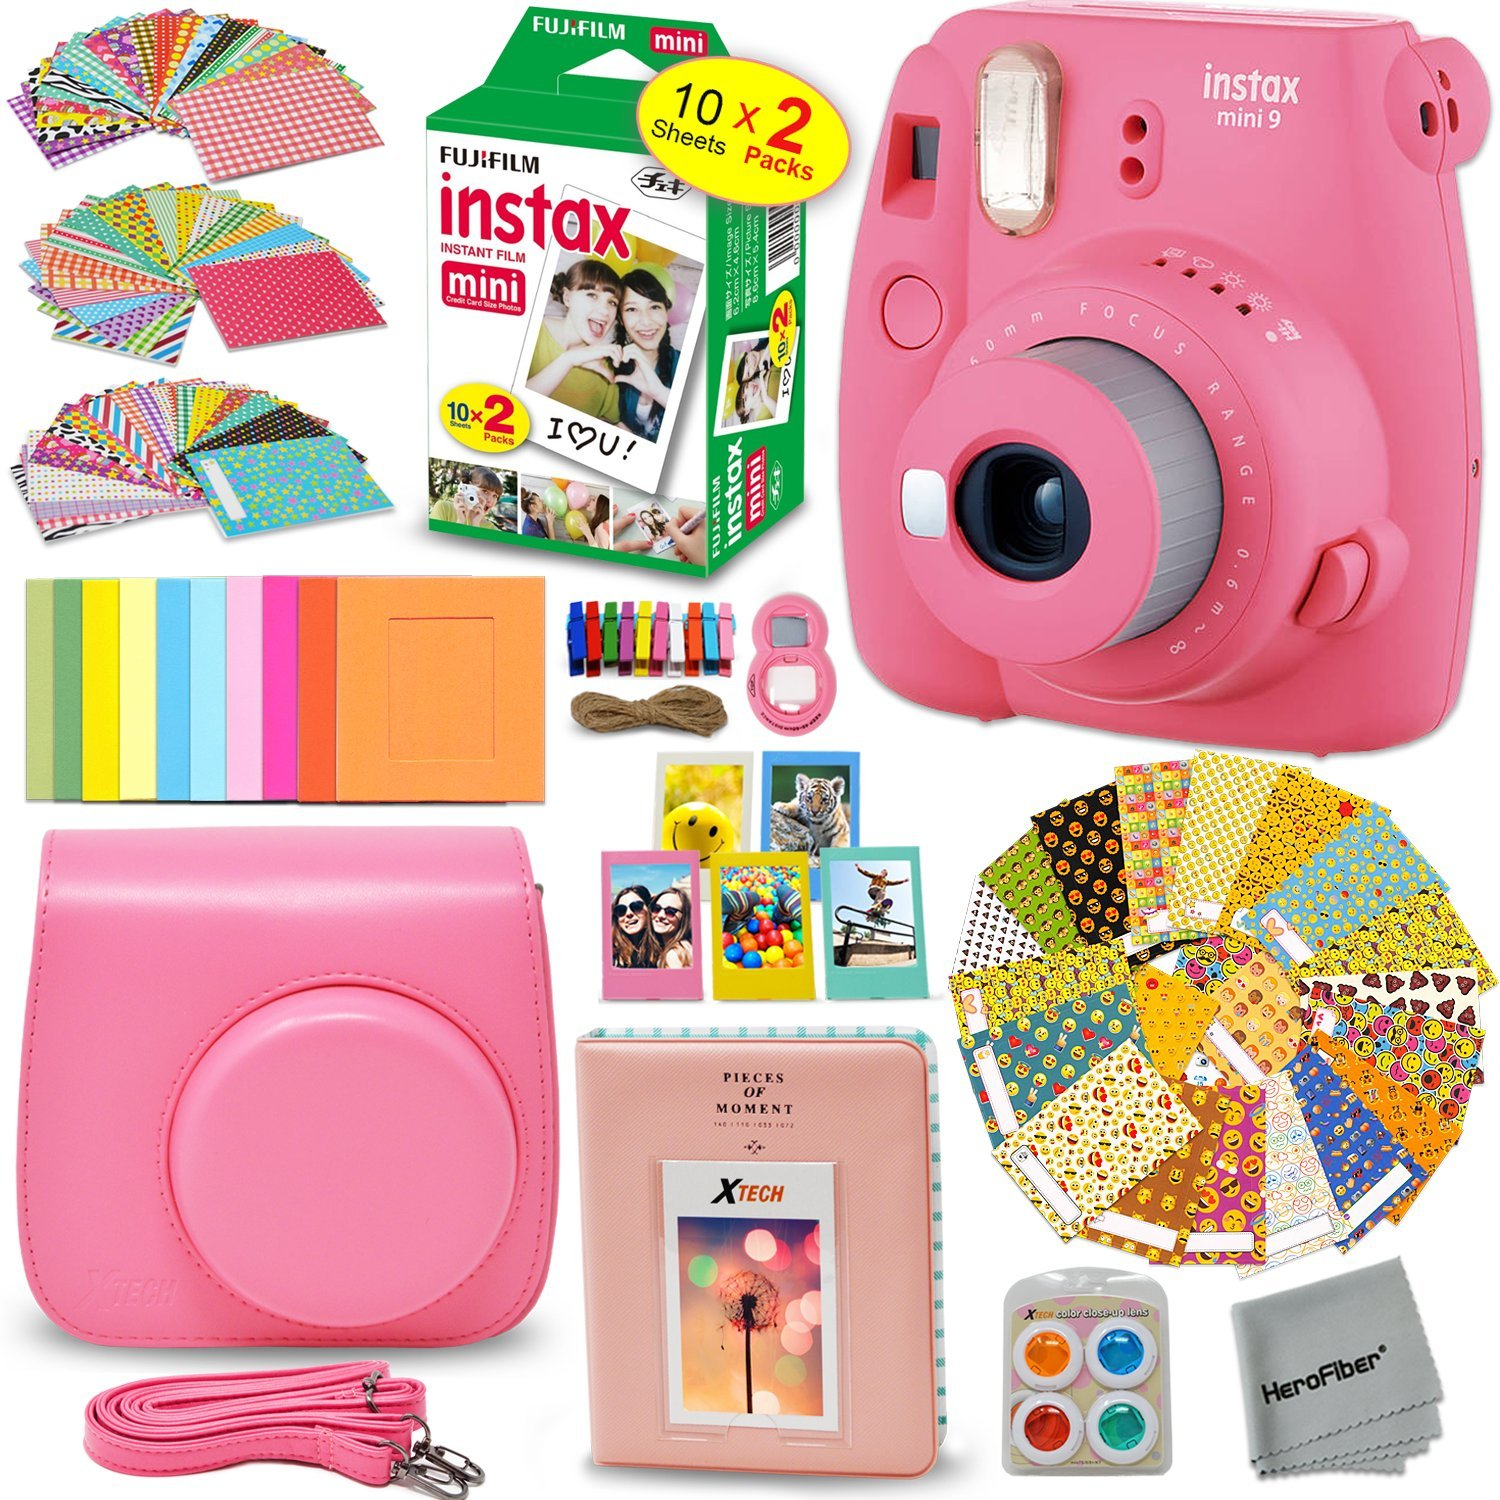 FujiFilm Instax Mini 9 Instant Camera FLAMINGO PINK + EMOJI Film stickers + Fuji INSTAX Film (20 Sheets) + Custom Fitted Case + Instax Album + Colorful Stickers + Fun Frames + 4 Colored Filters + MORE by HeroFiber